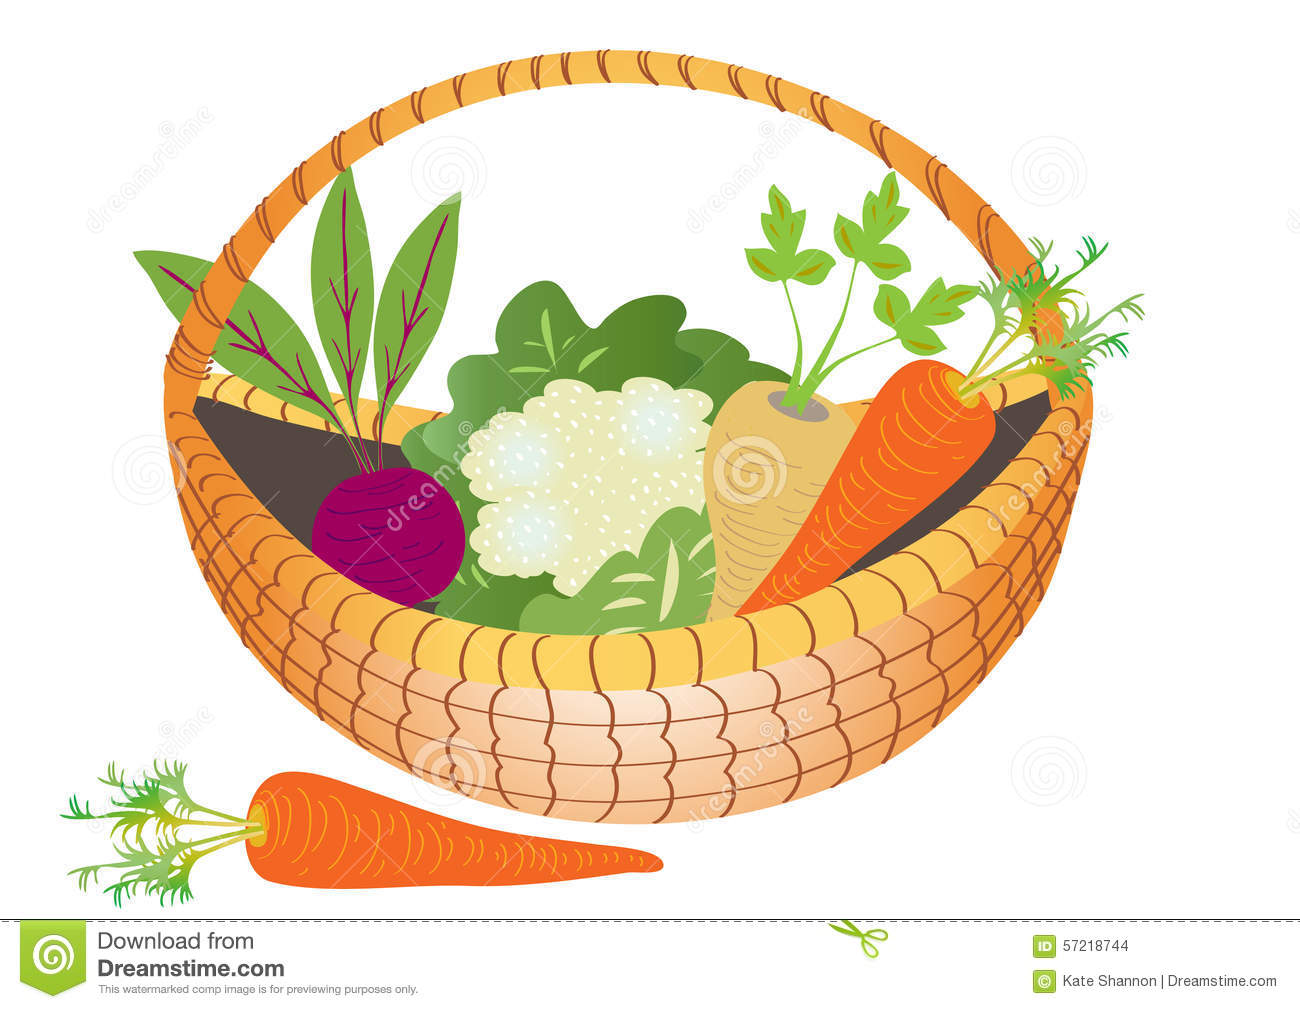 A Basket Of Vegetables Stock Vector - Image: 57218744